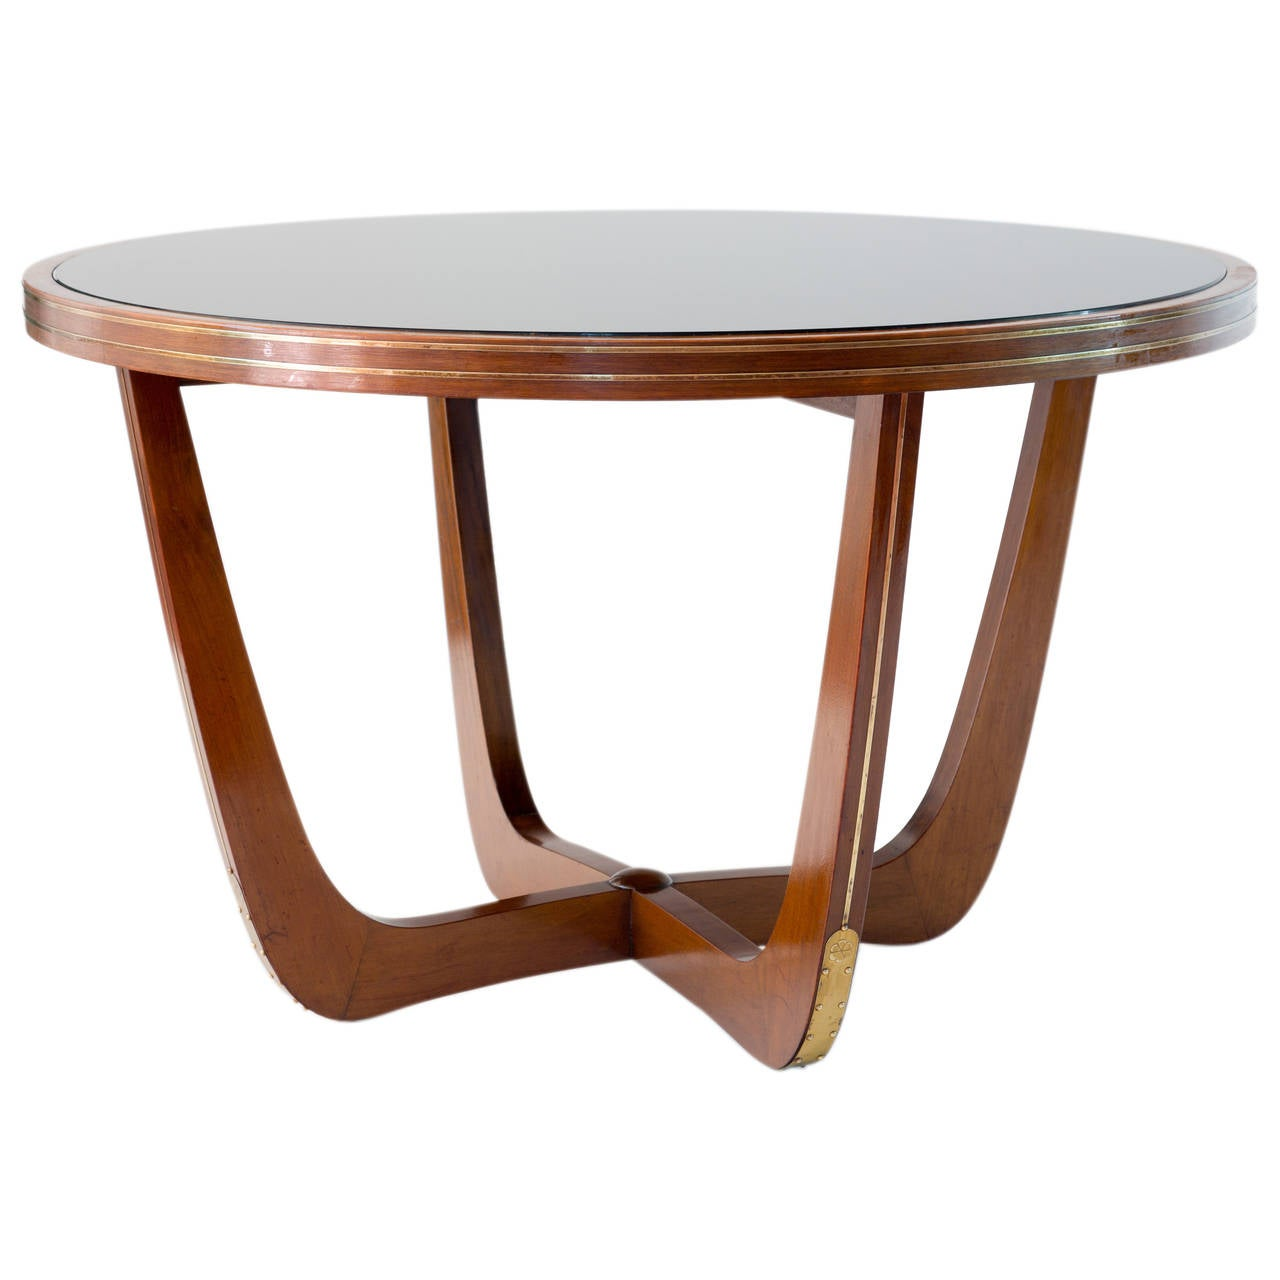 Big Pier Luigi Colli 651 Coffee Table 1940 At 1stdibs